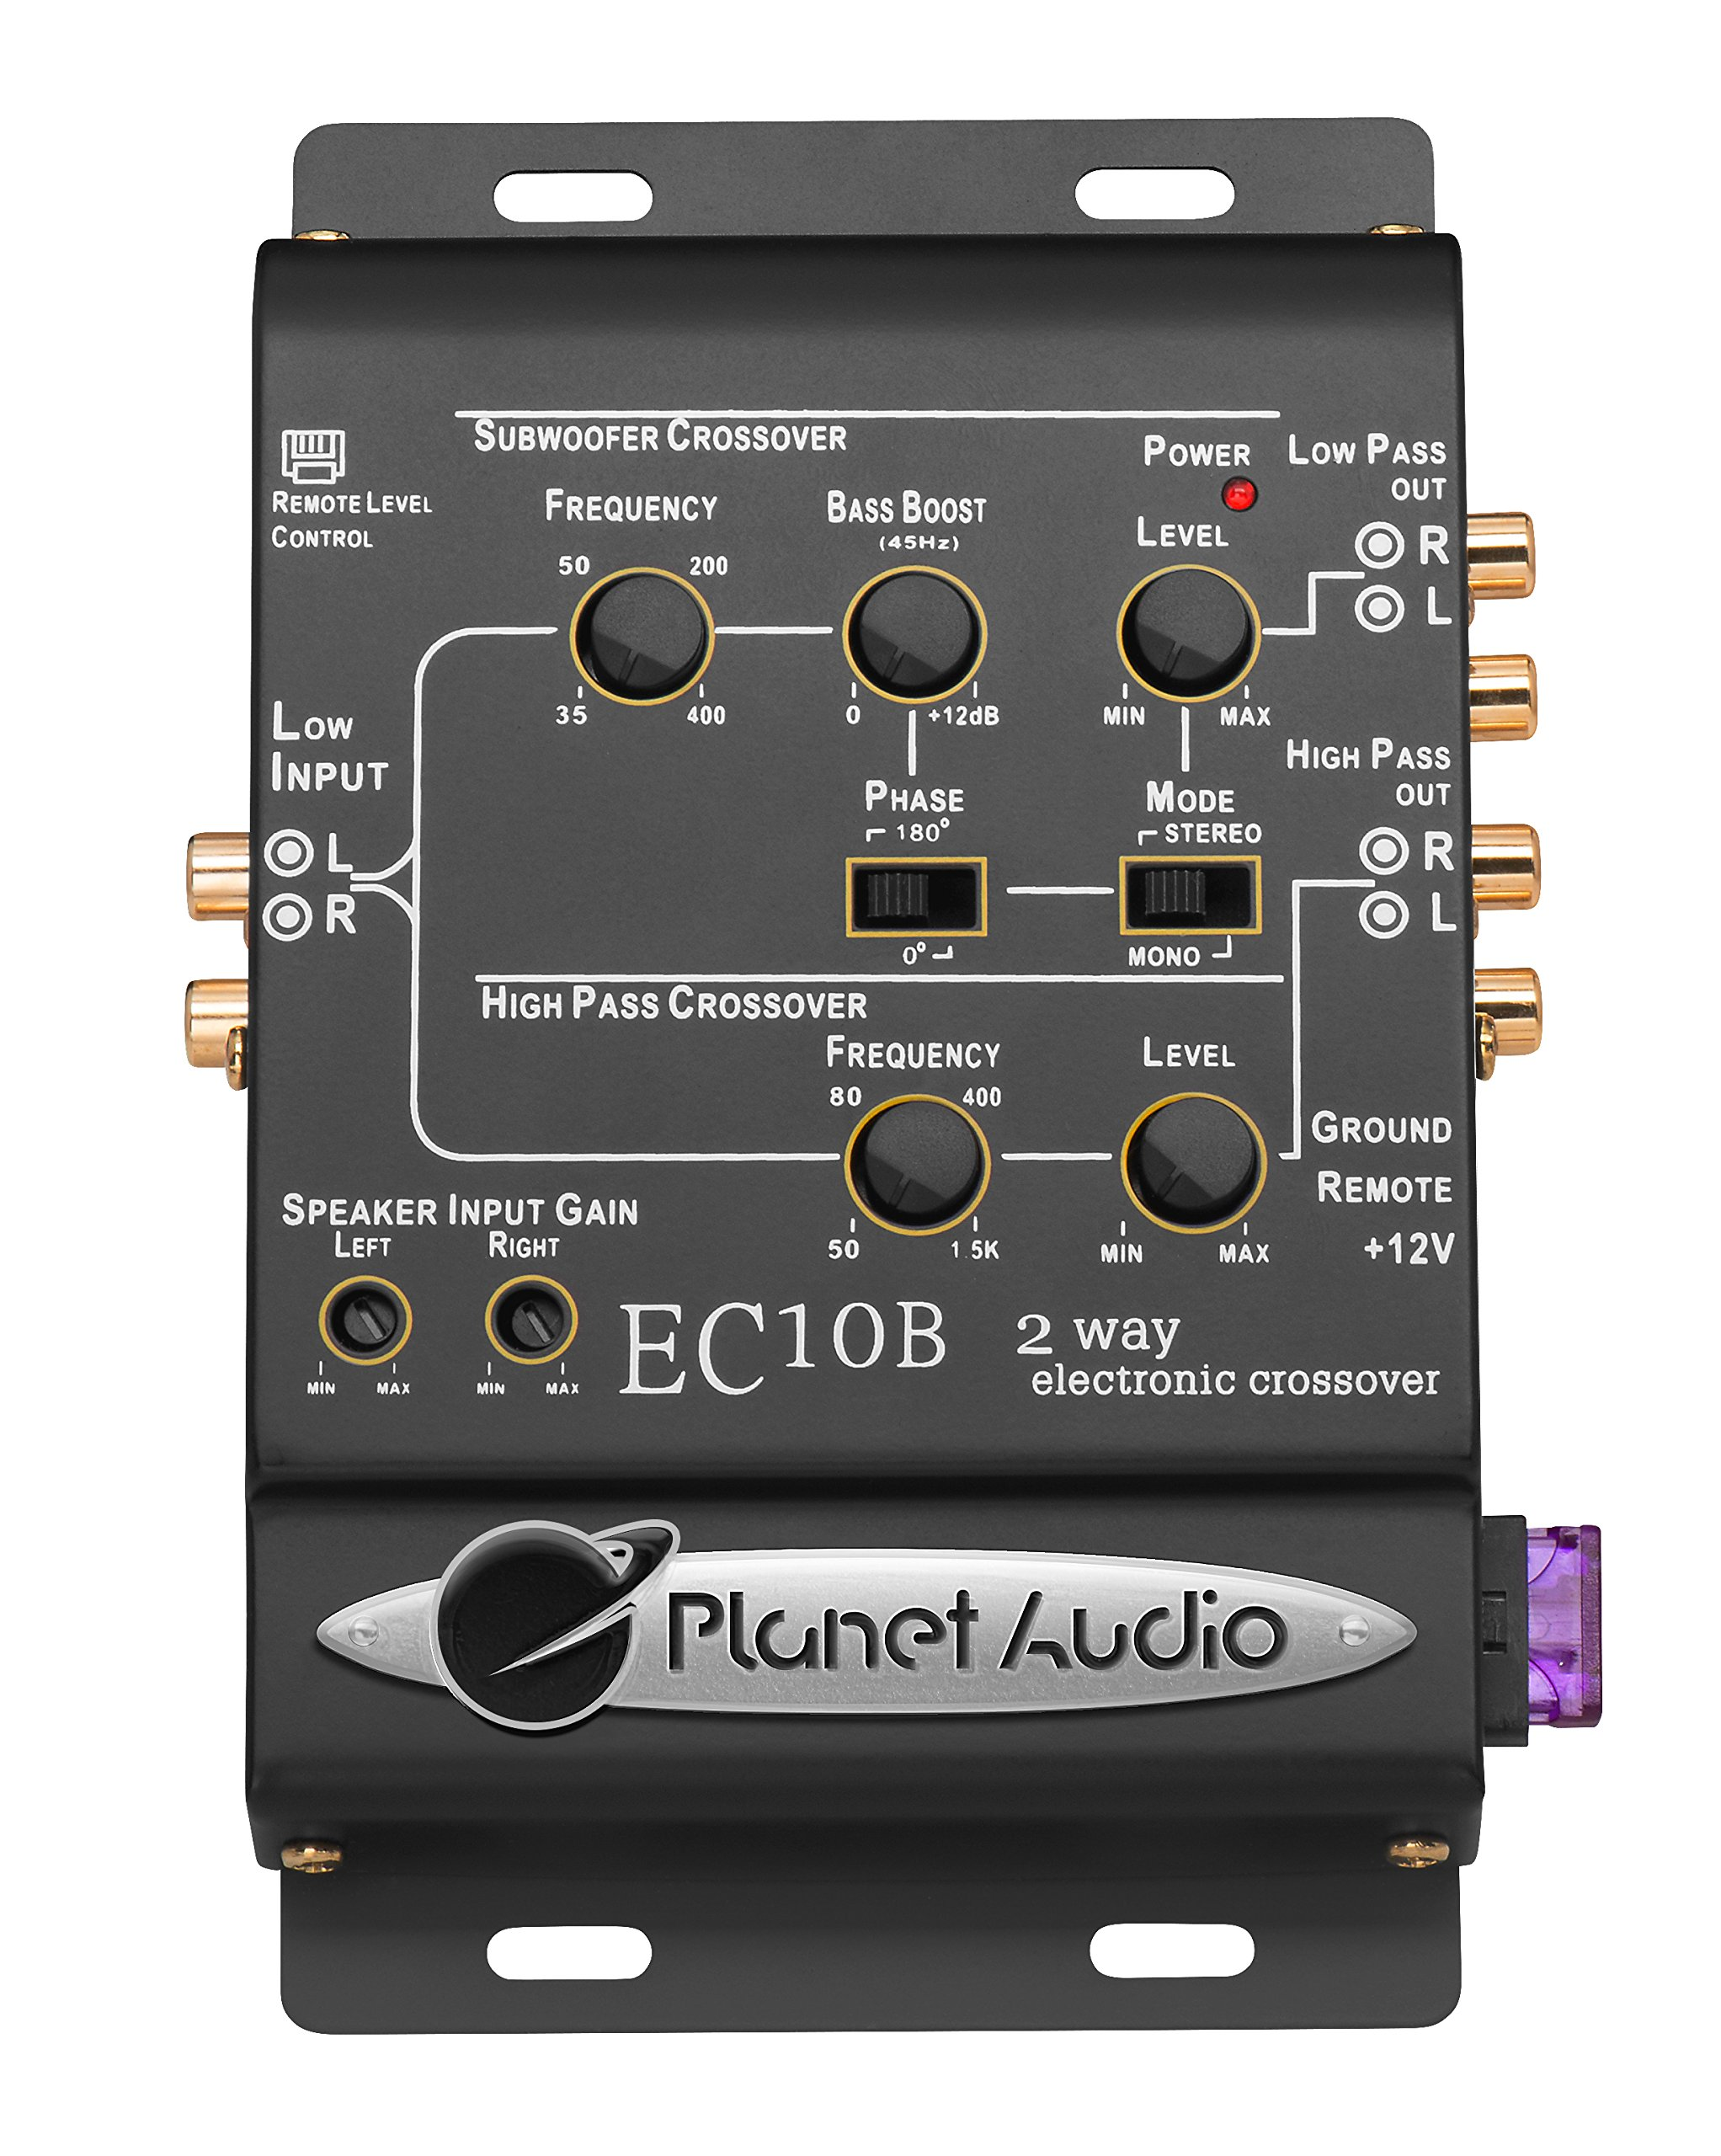 Planet Audio EC10B 2-Way Electronic Crossover With Remote Subwoofer Control by Planet Audio